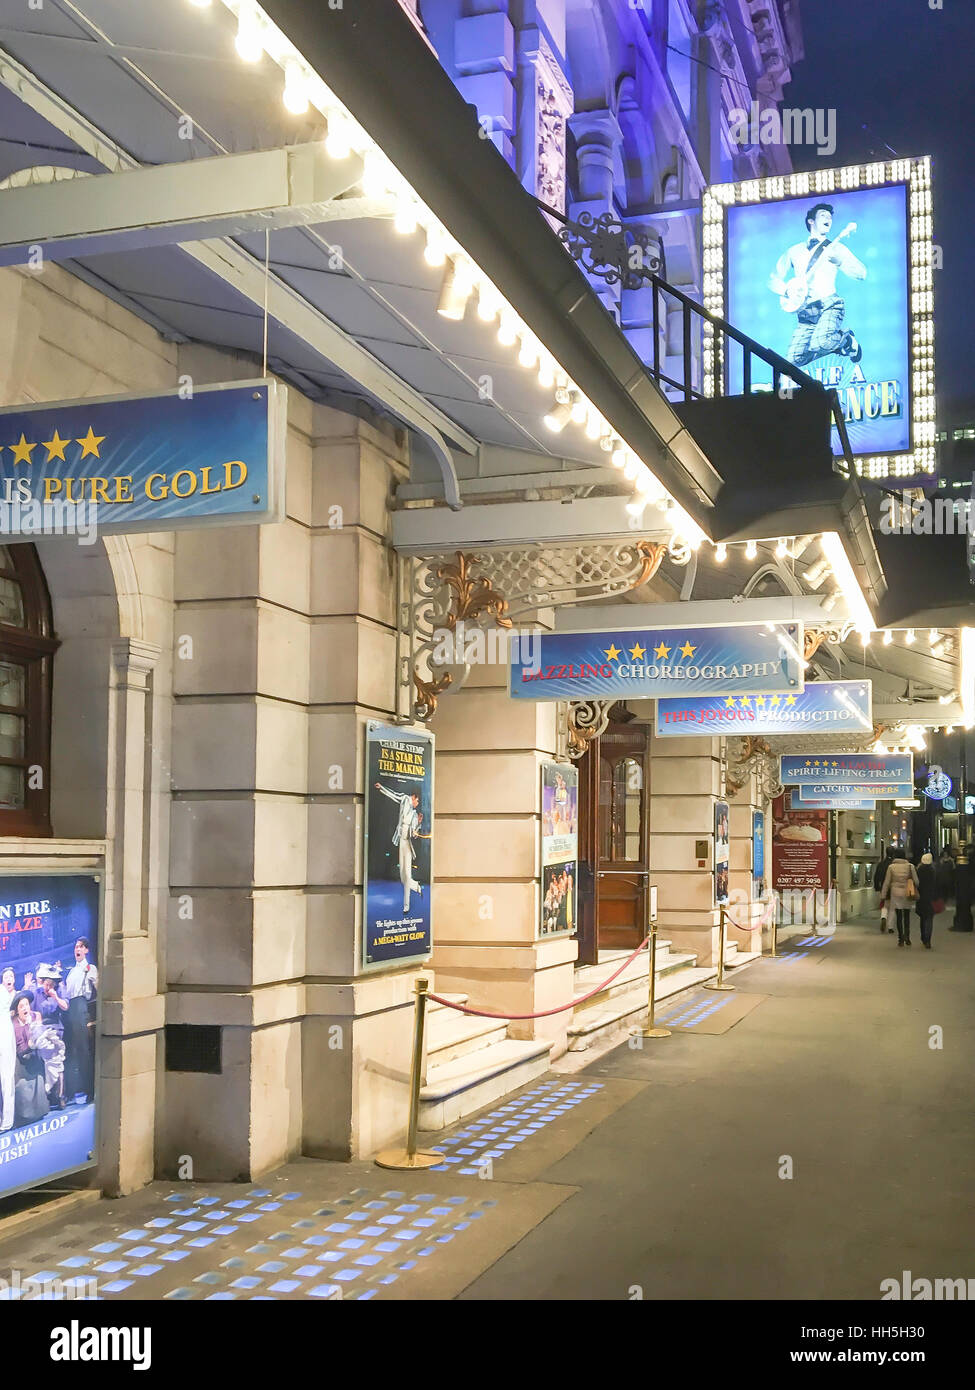 Medio Sixpence en Noel Coward Theatre, St Martin's Lane, West End, la ciudad de Westminster, Greater London, Imagen De Stock